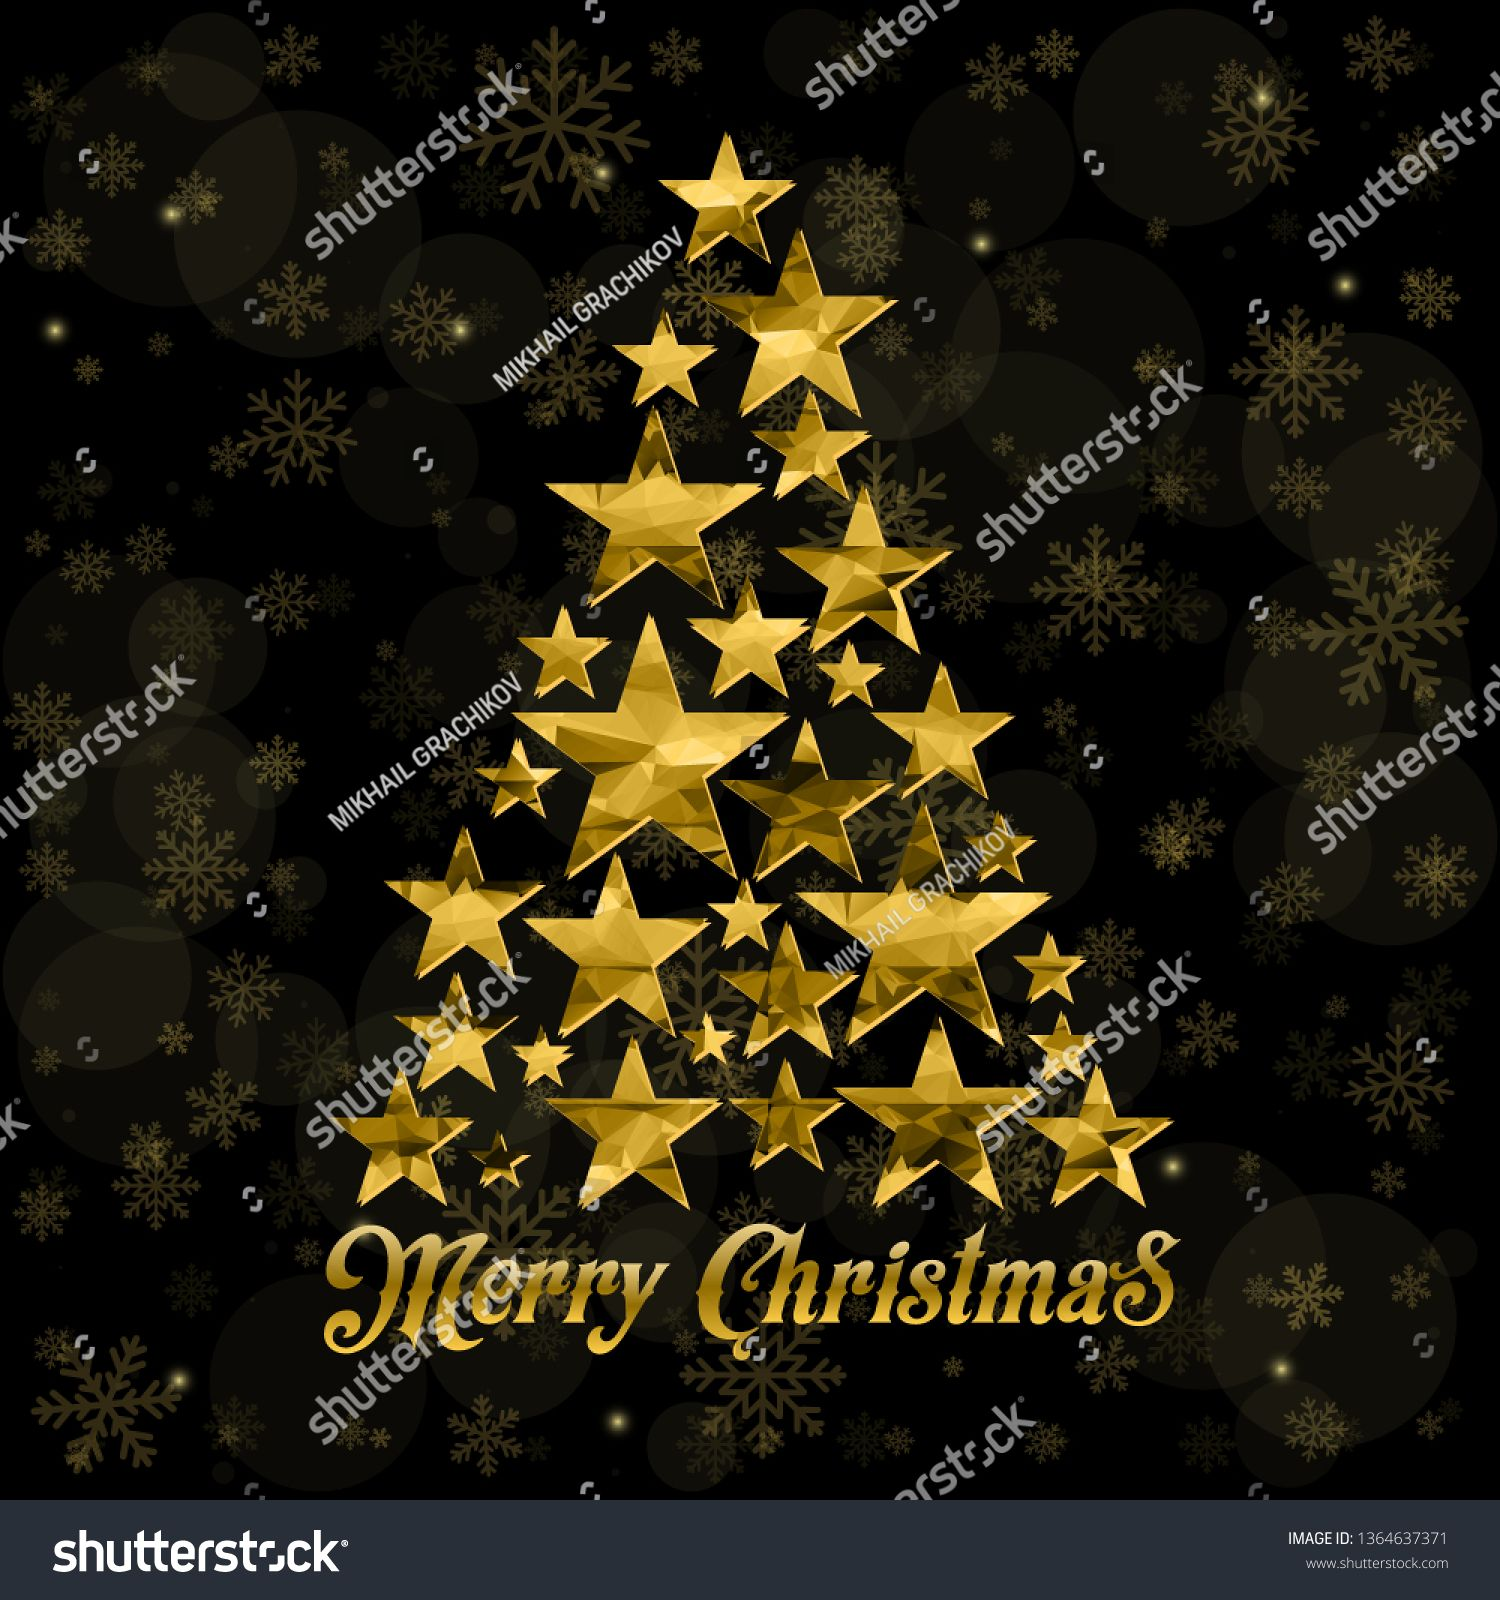 merry christmas and happy new year 2020 2021 greeting card background for web and mobil in 2020 merry christmas and happy new year happy new year 2020 merry christmas merry christmas and happy new year 2020